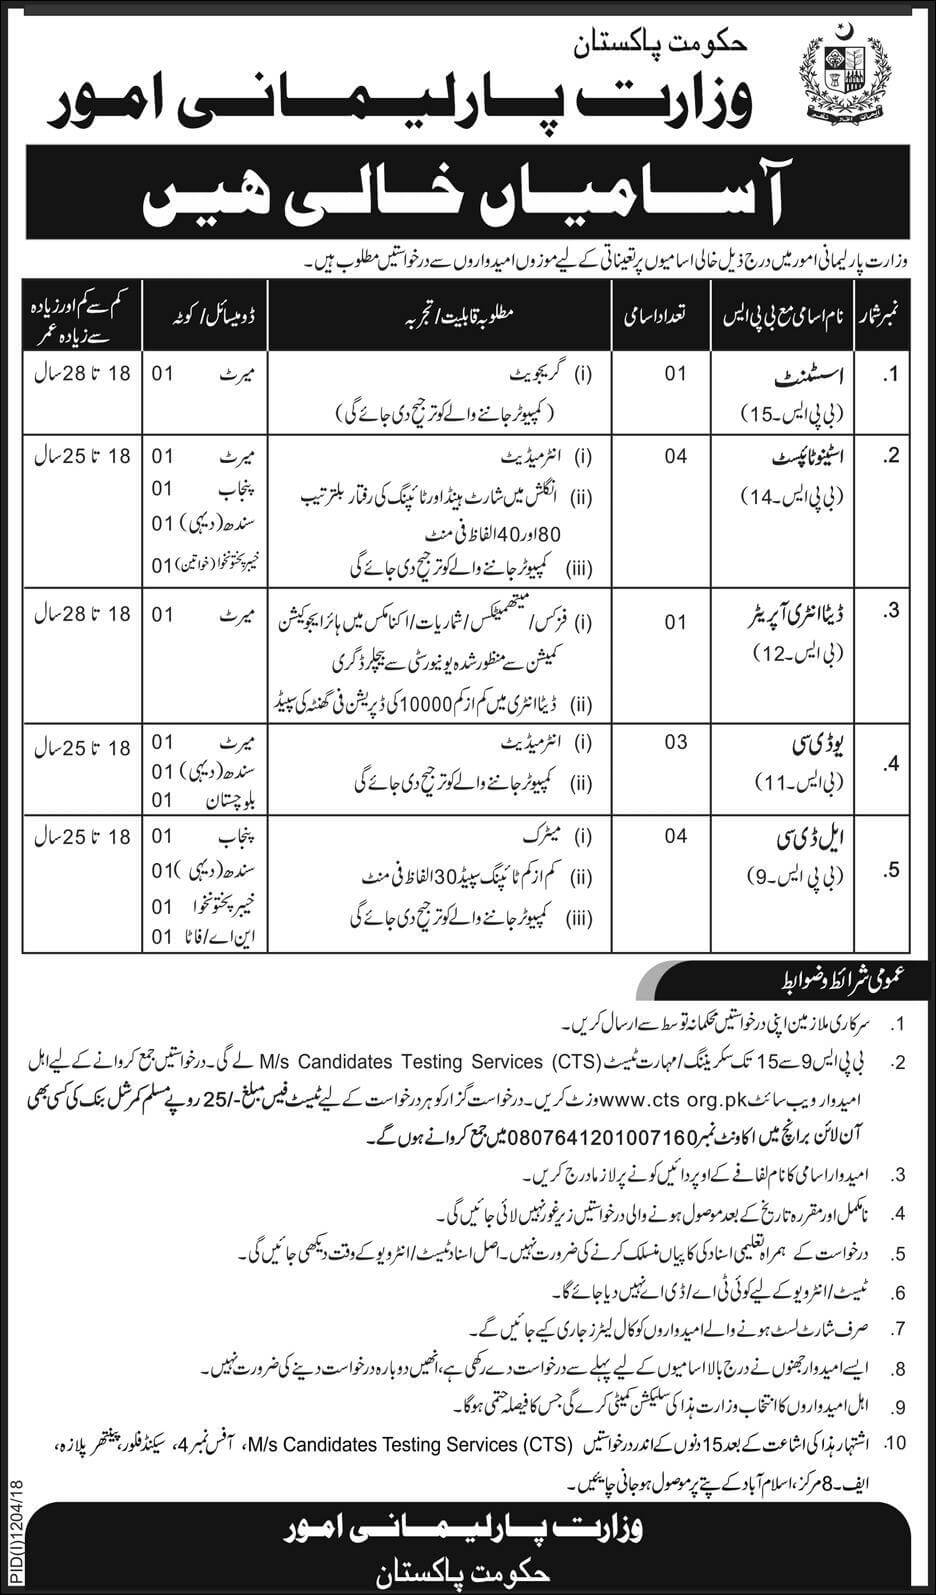 Government of Pakistan Ministry of Parliamentary Affairs Latest Jobs 2018 -thumbnail